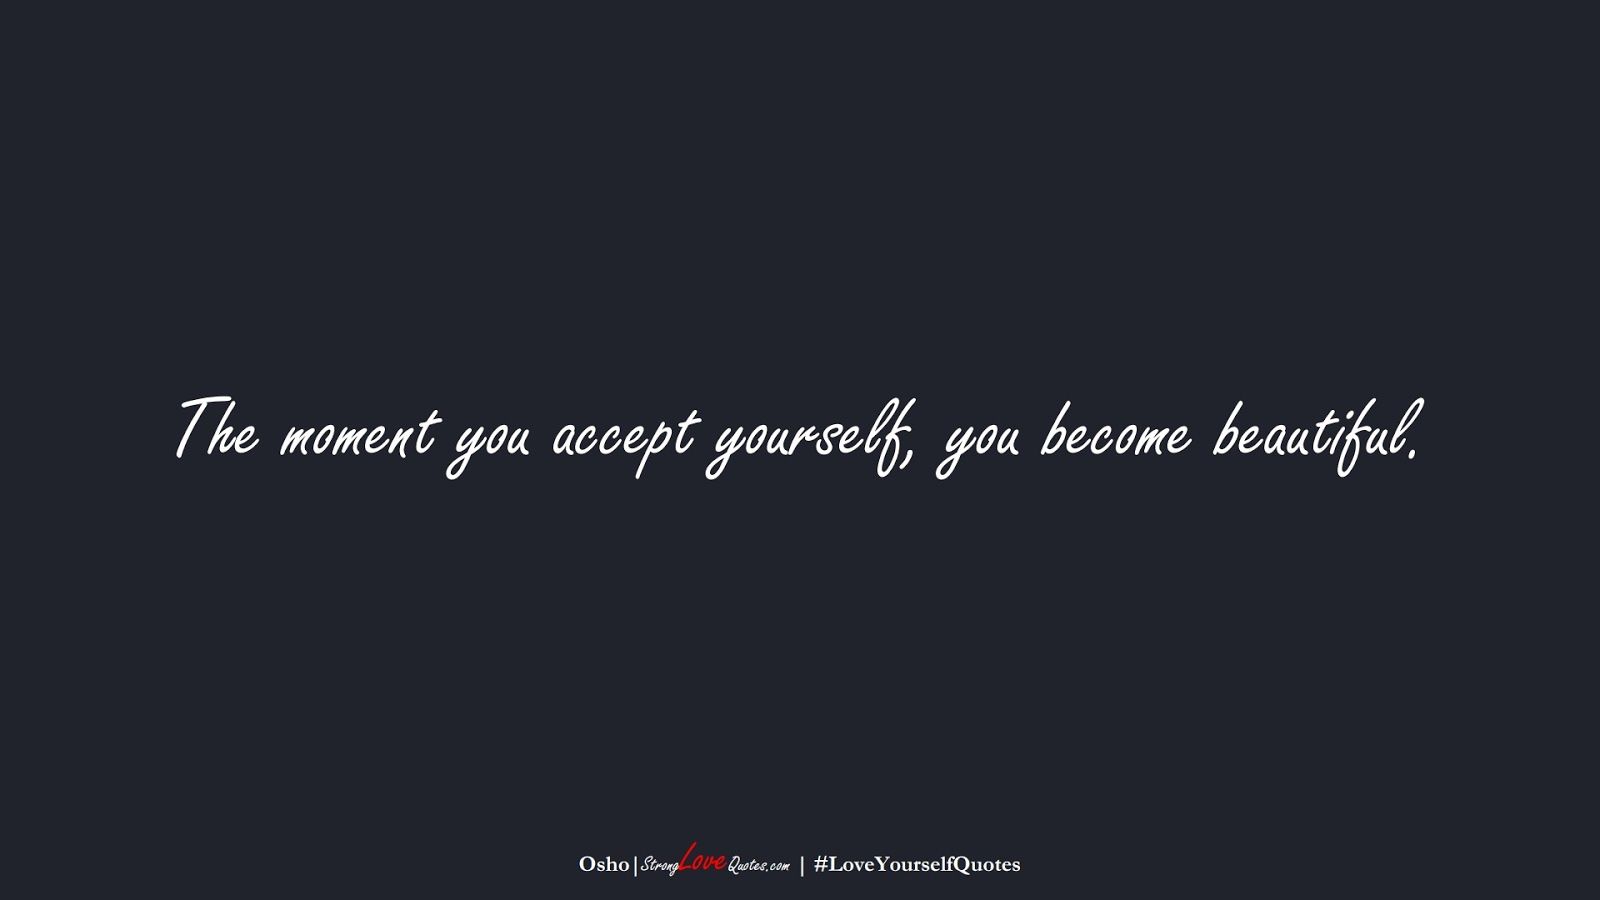 The moment you accept yourself, you become beautiful. (Osho);  #LoveYourselfQuotes